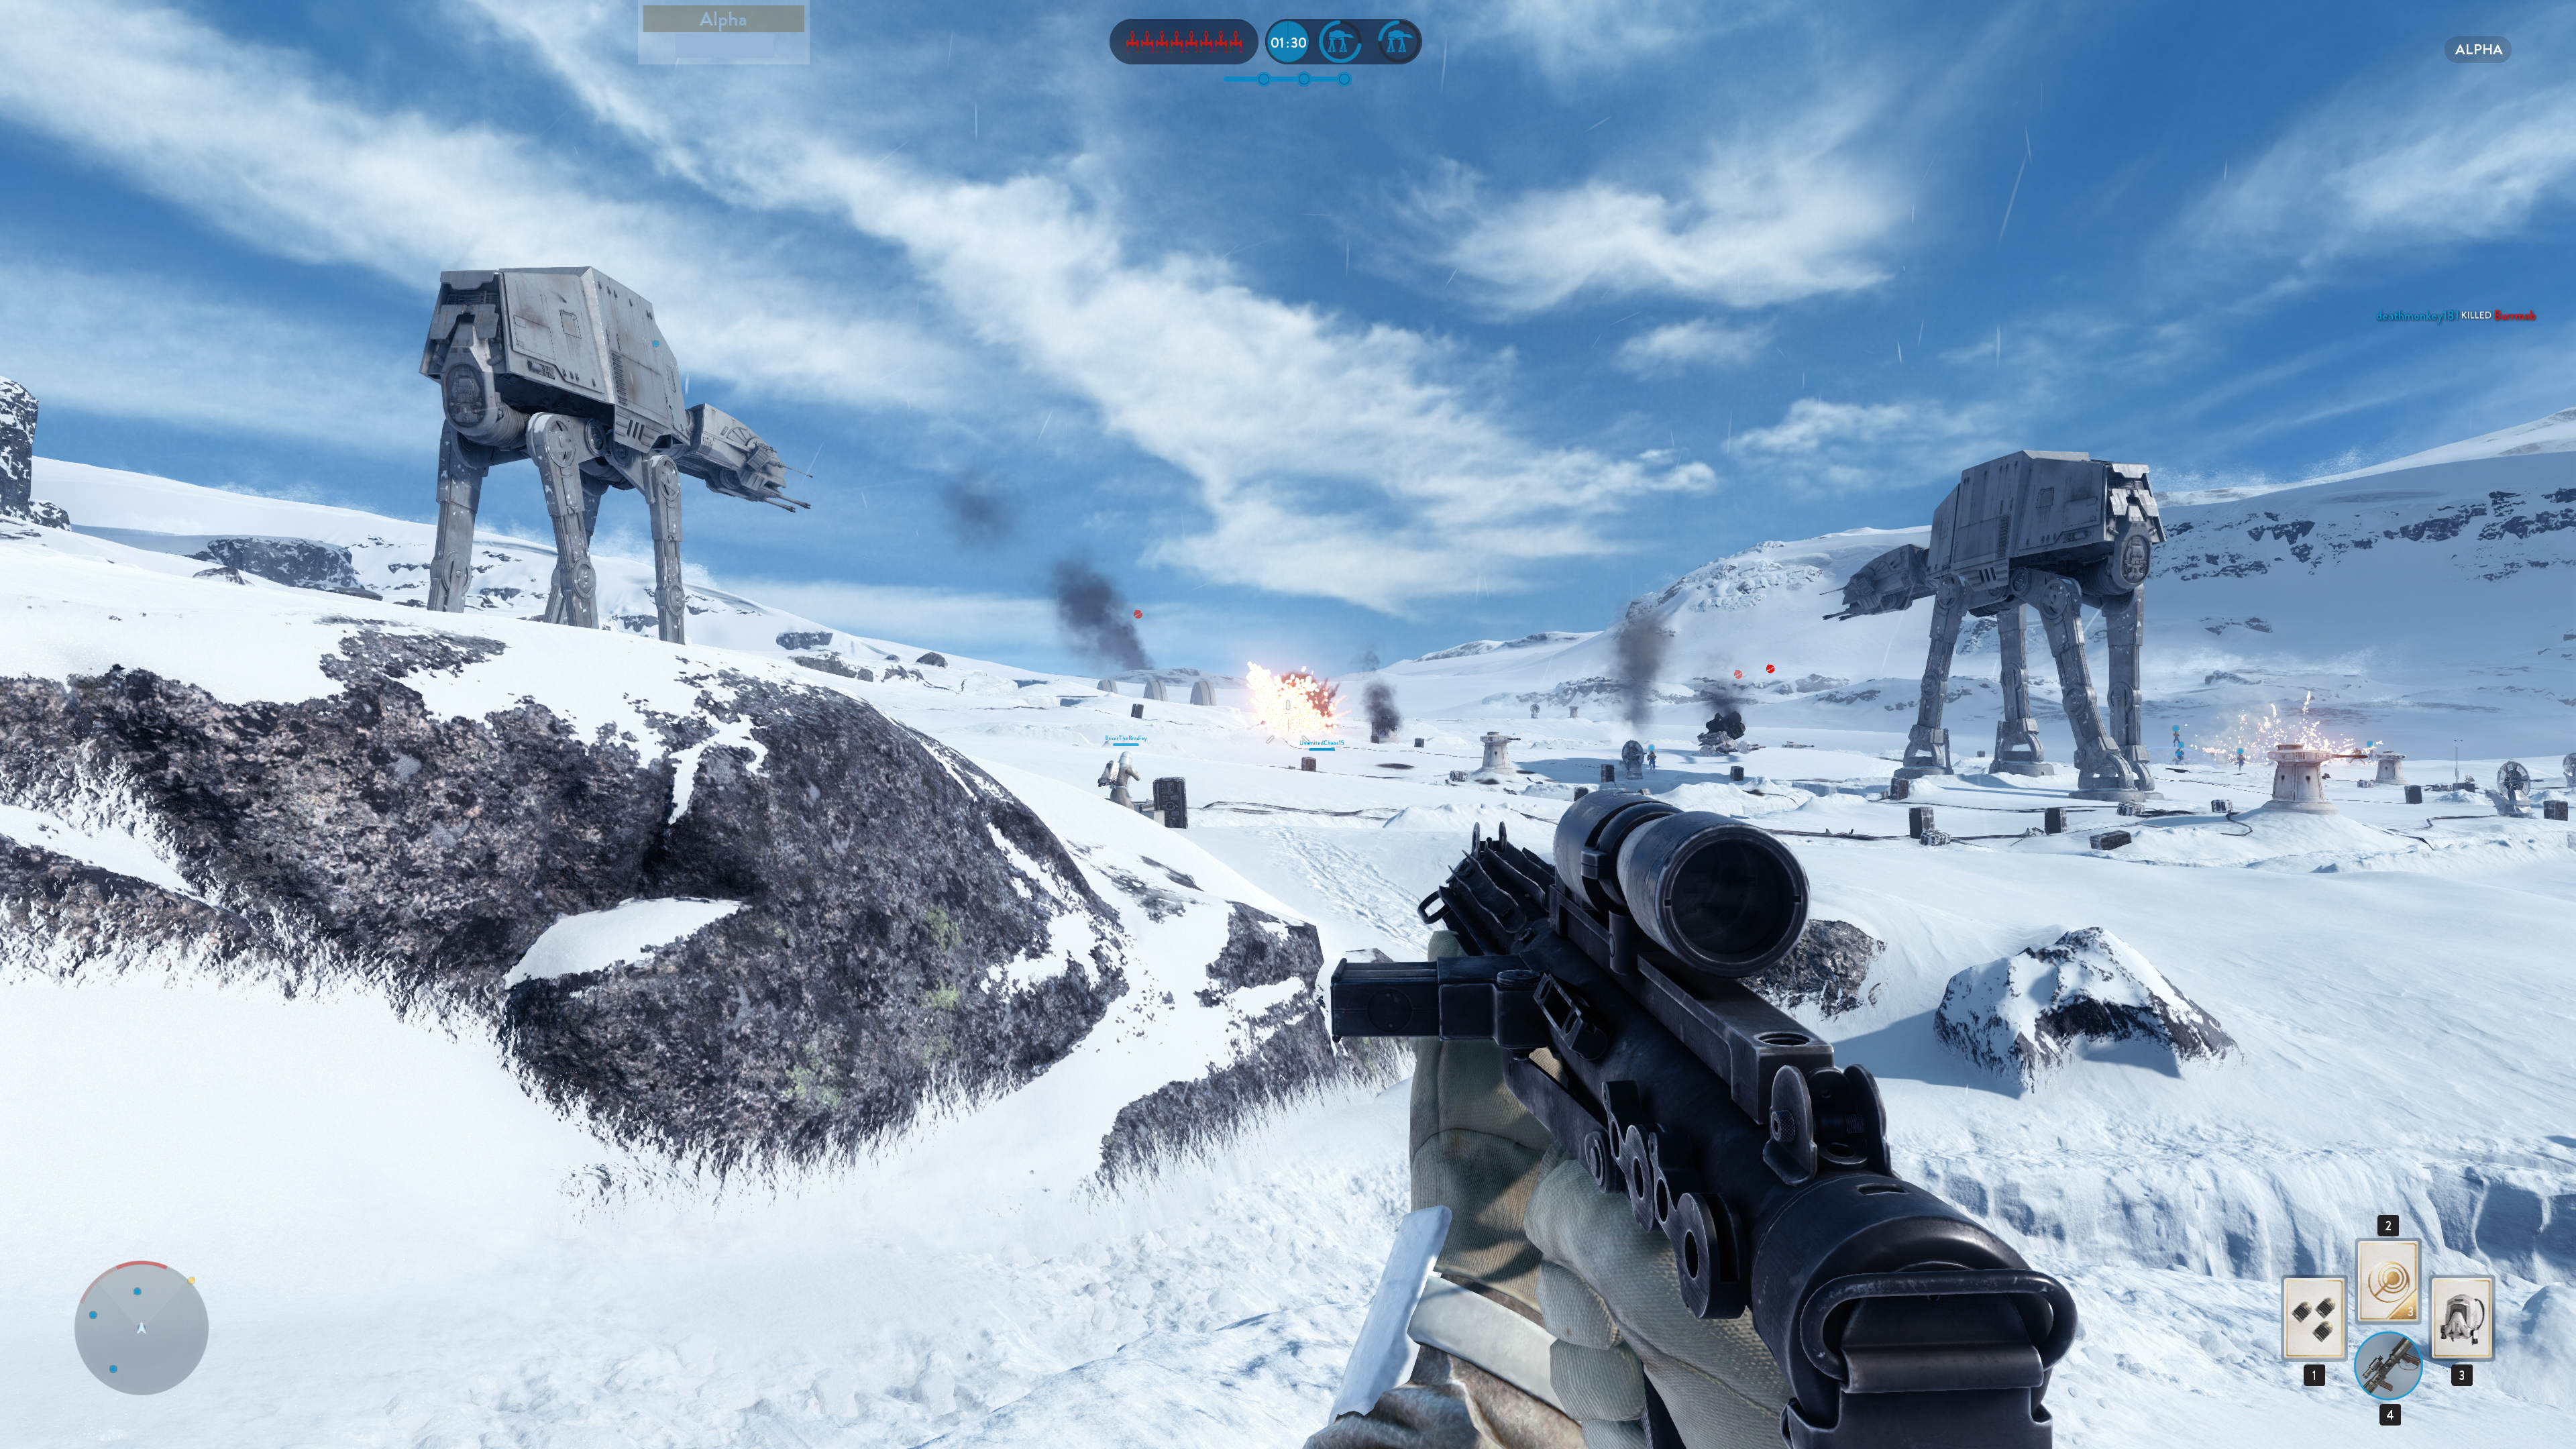 19nvsb1 Sony Suggest Star Wars Battlefront Is The Game To Sell You On VR